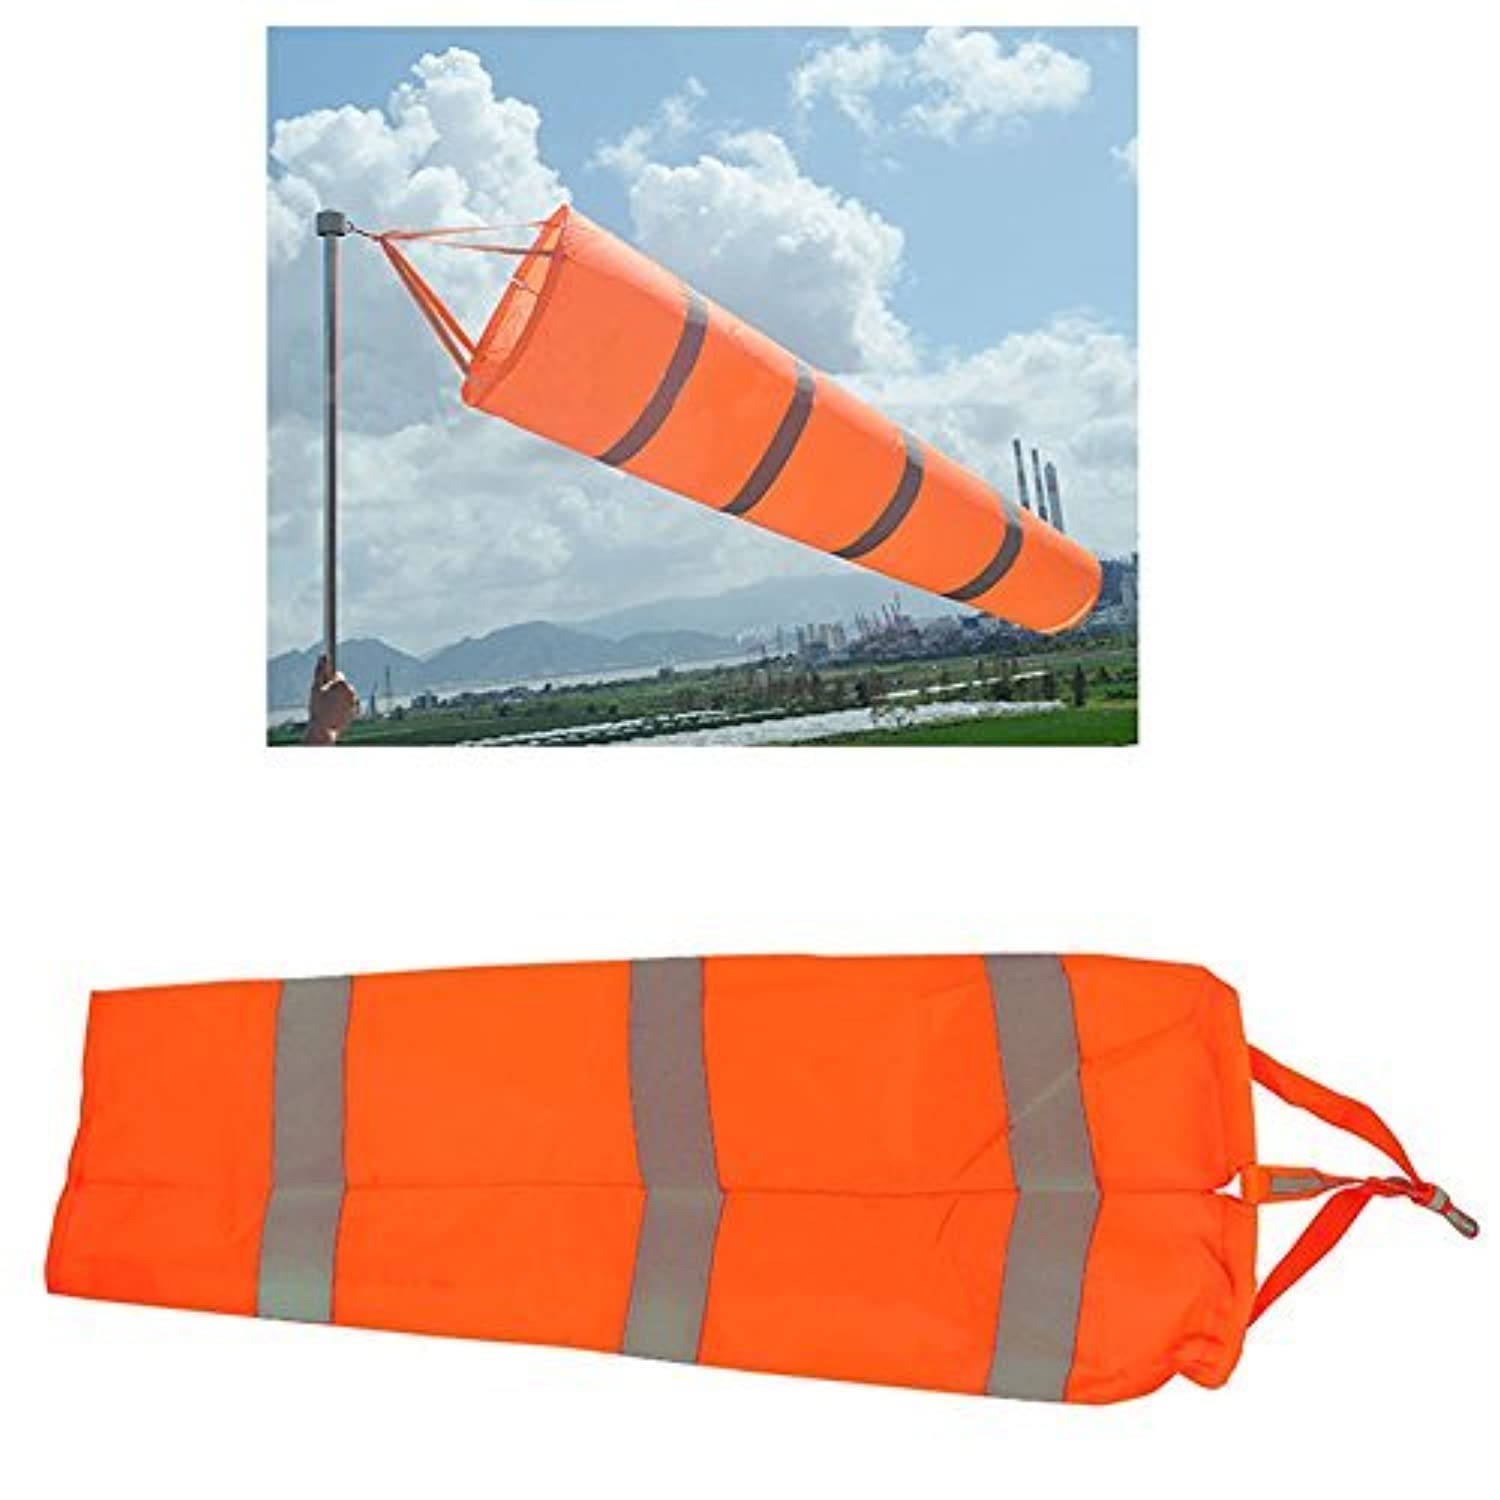 Airport WindsockWind Cone 80cm Long Outside Wind Sock Windsock Outdoor Wind Sock Bag with Reflective Belt [並行輸入品]